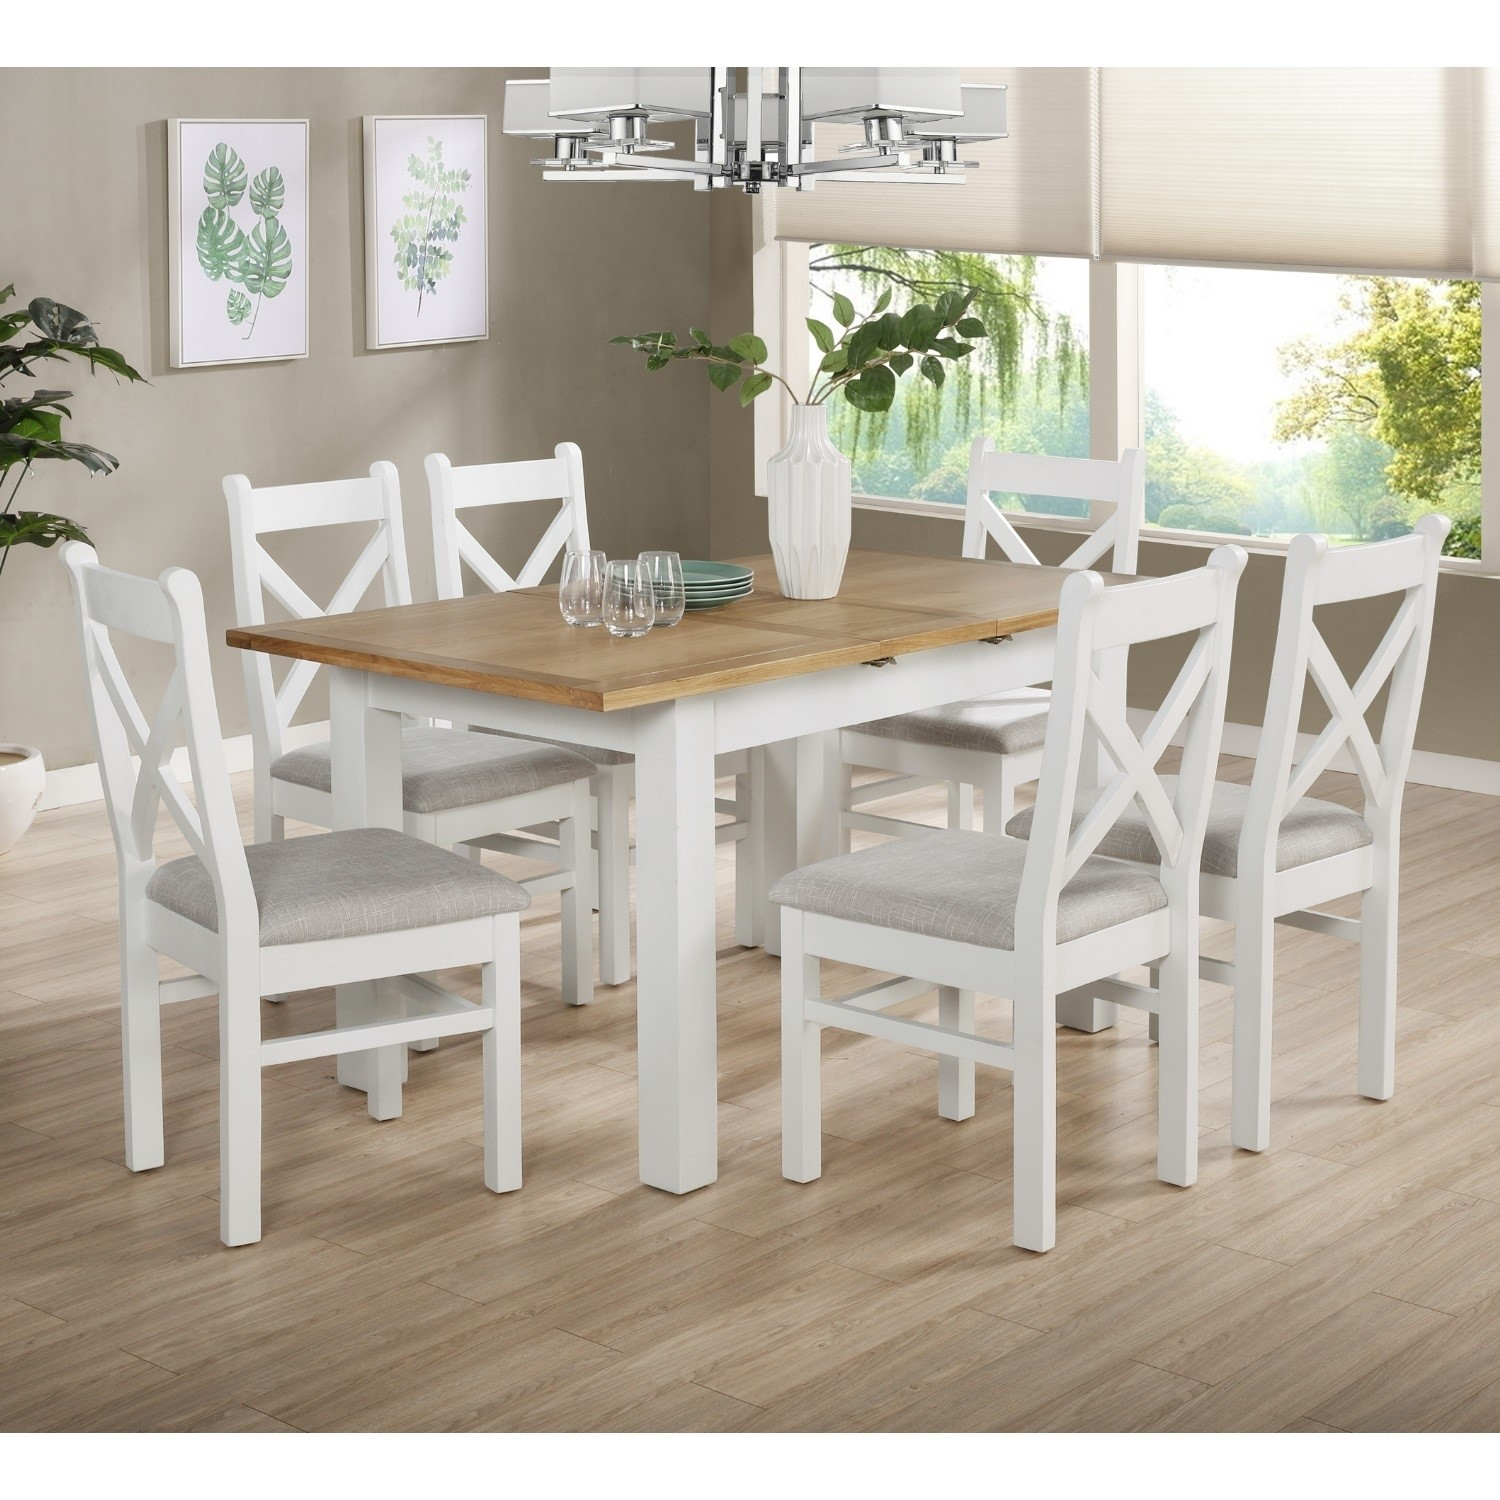 White Oak Extendable Dining Set With 6 White Dining Chairs Aylesbury Buyitdirect Ie